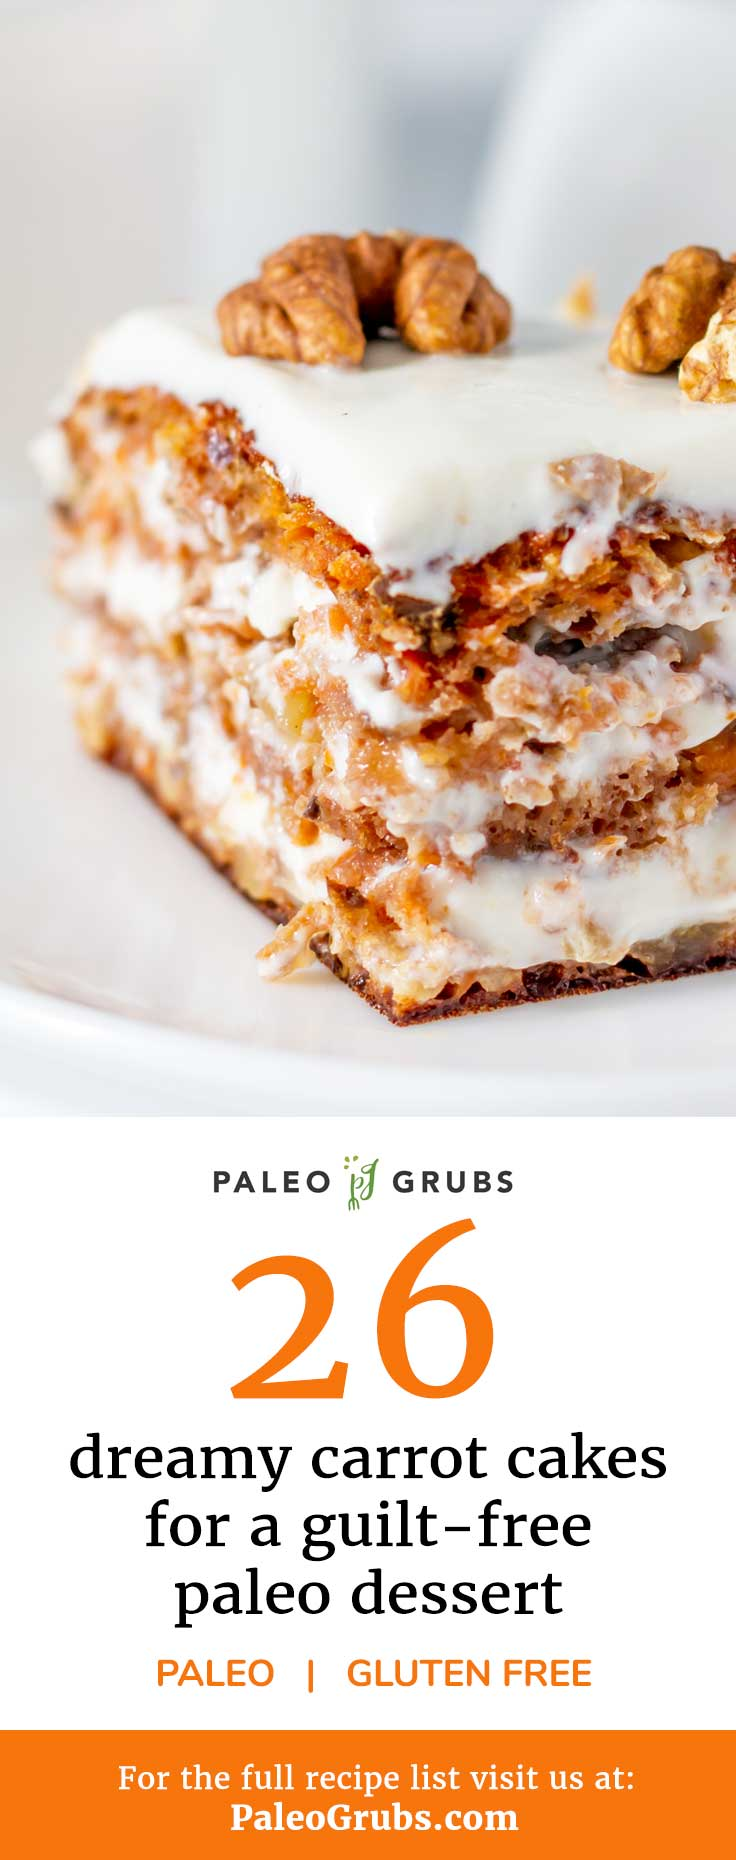 Try these paleo carrot cake recipes, completely free of refined sugars, dairy, and grains. Now you can get your Paleo dessert fix and feel good about it at the same time!